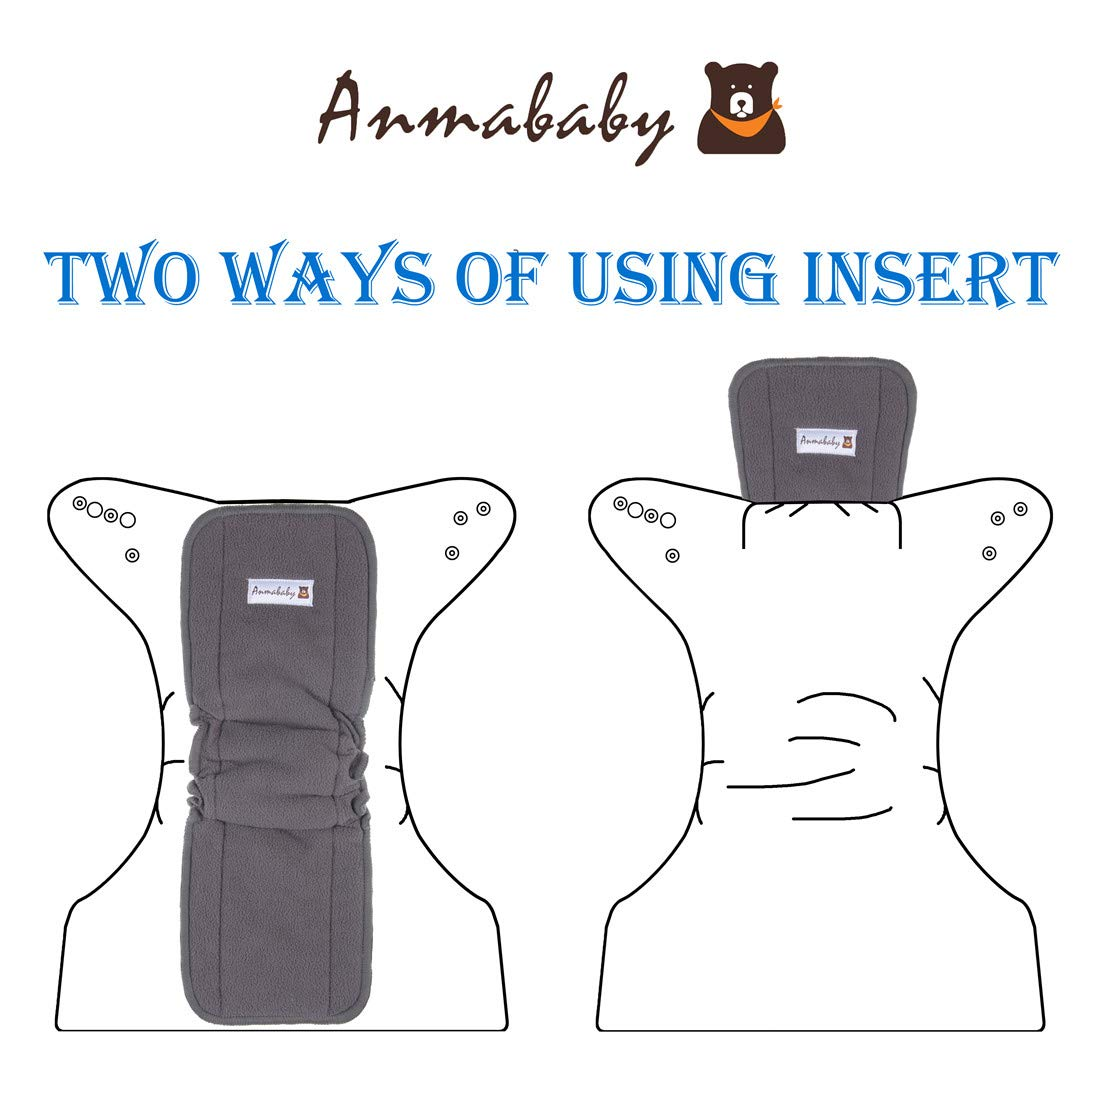 High Absorbing Washable Diaper Liners for Babies and Toddlers. Anmababy 12 Pack Soft and Reusable 5 Layers Charcoal Bamboo Cloth Diaper Inserts